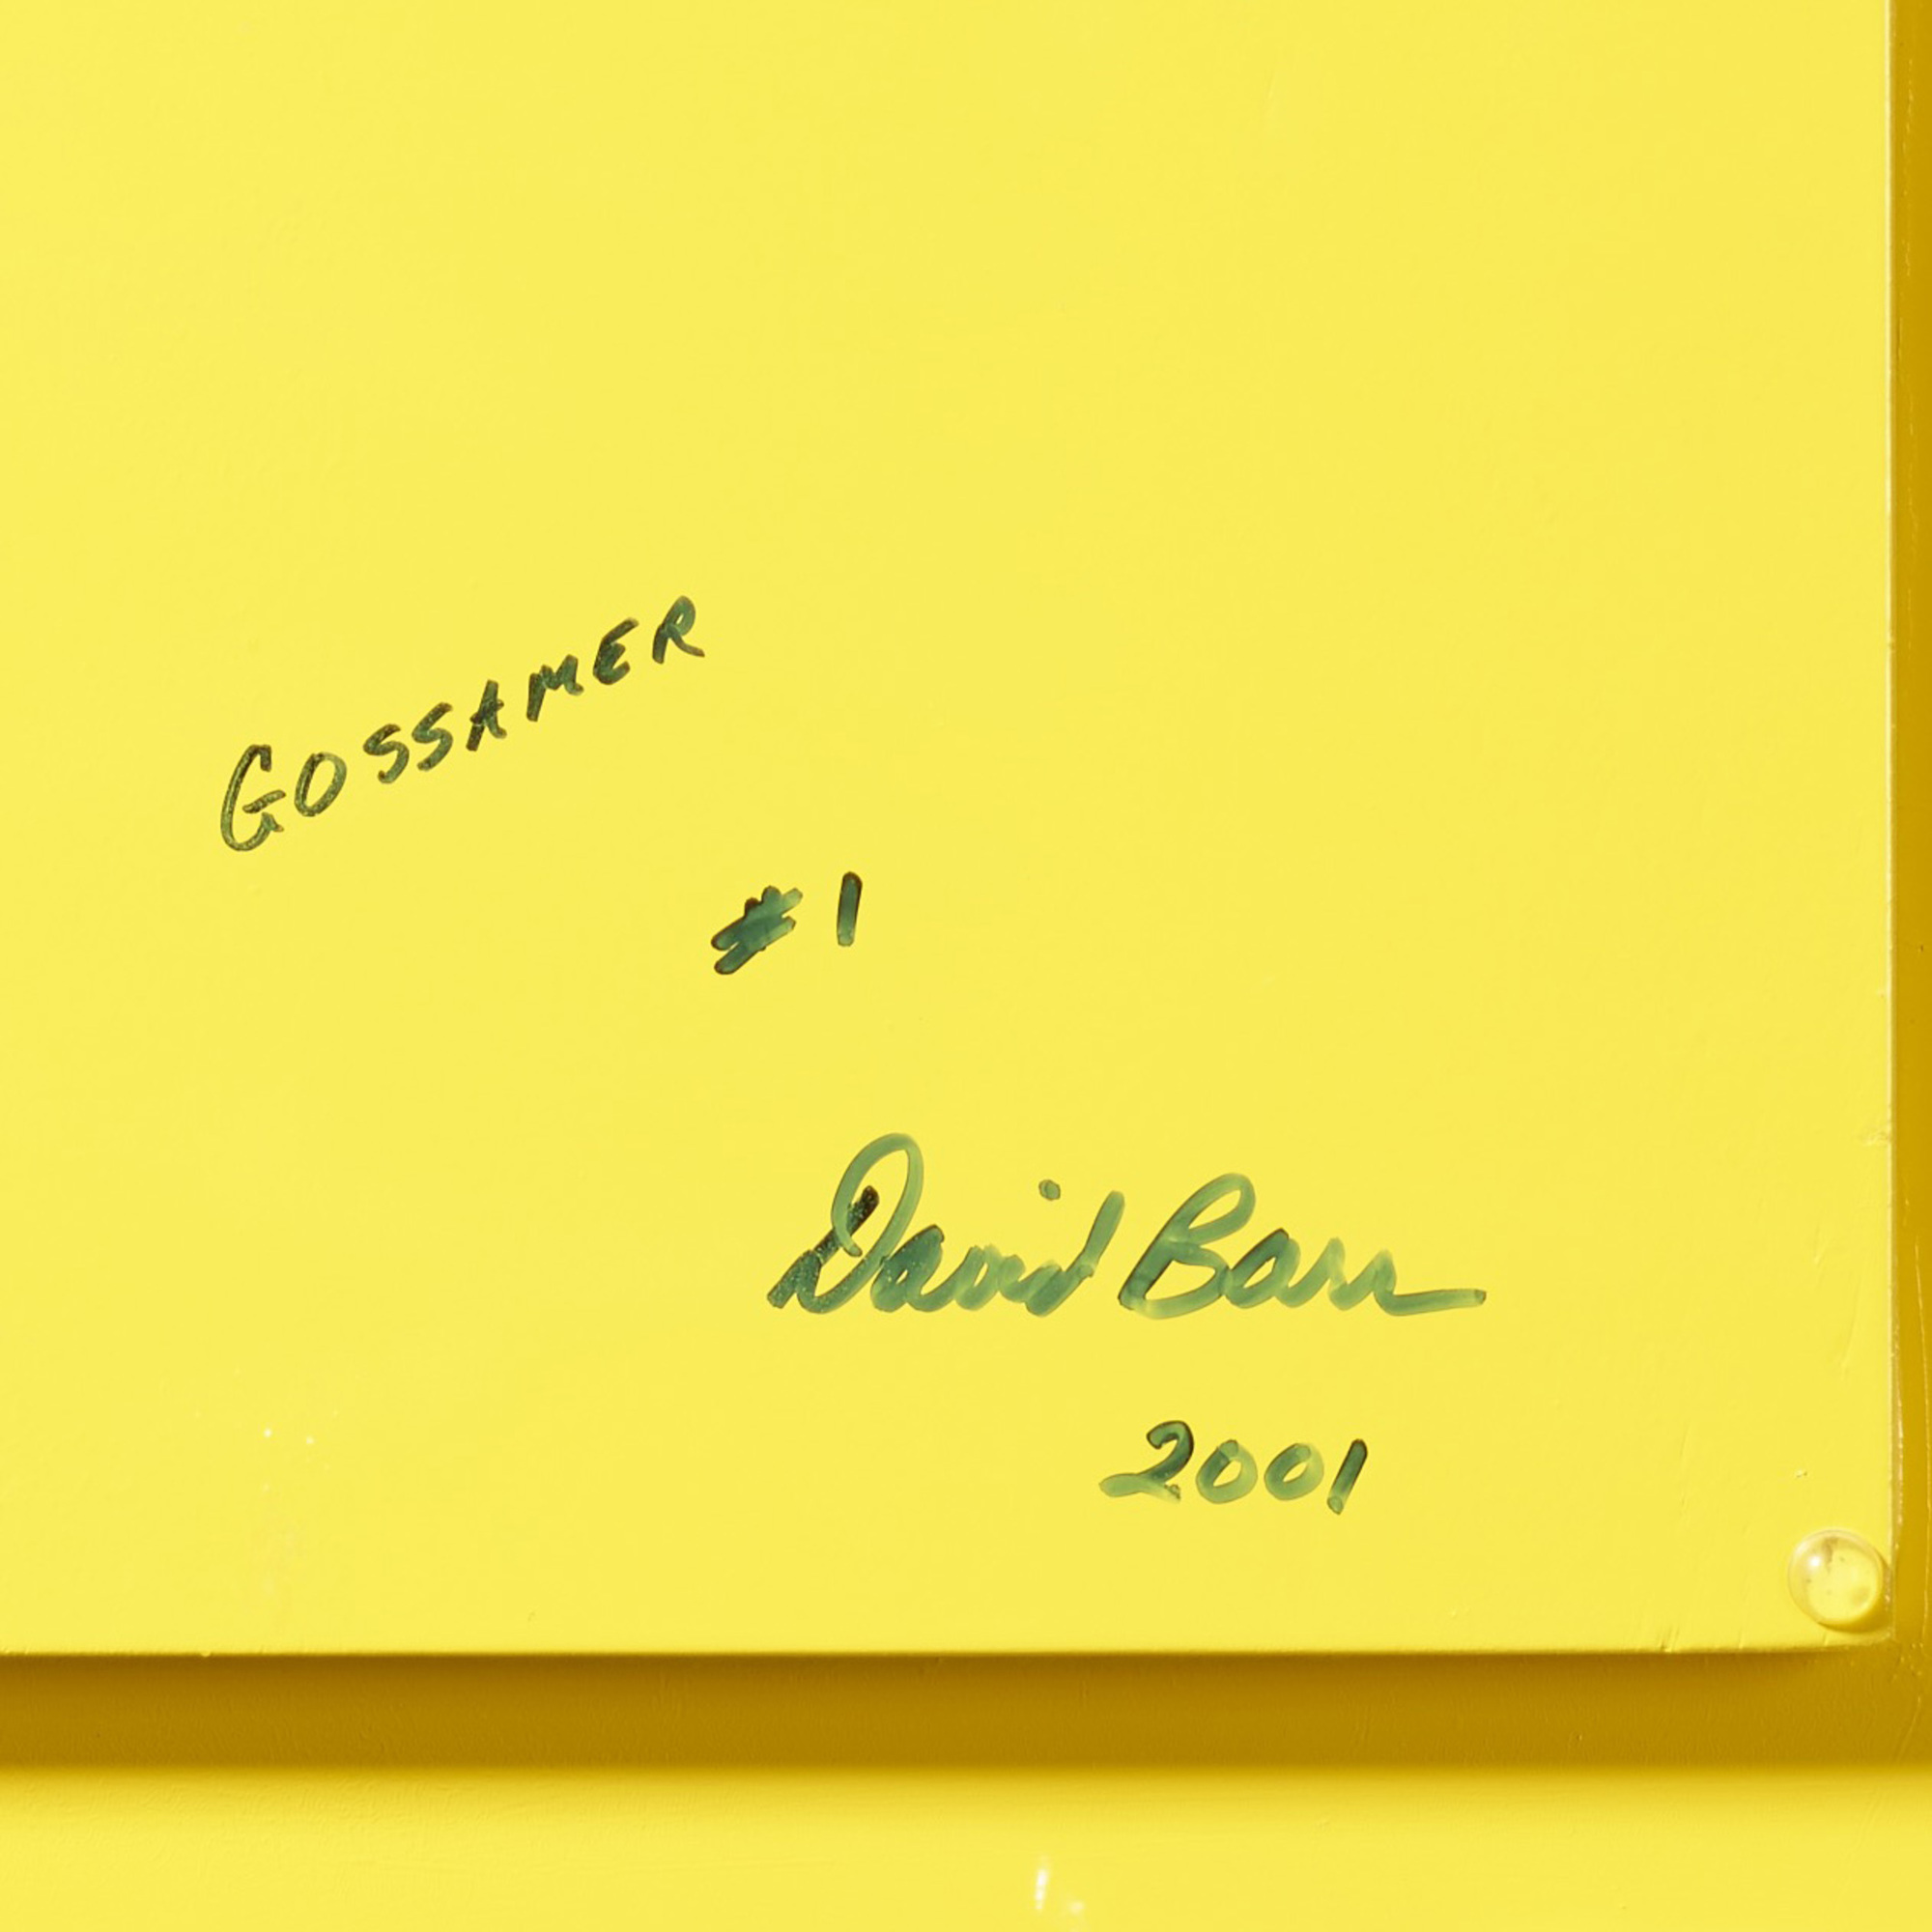 155: David Barr / Gossamer No. 1 (3 of 3)